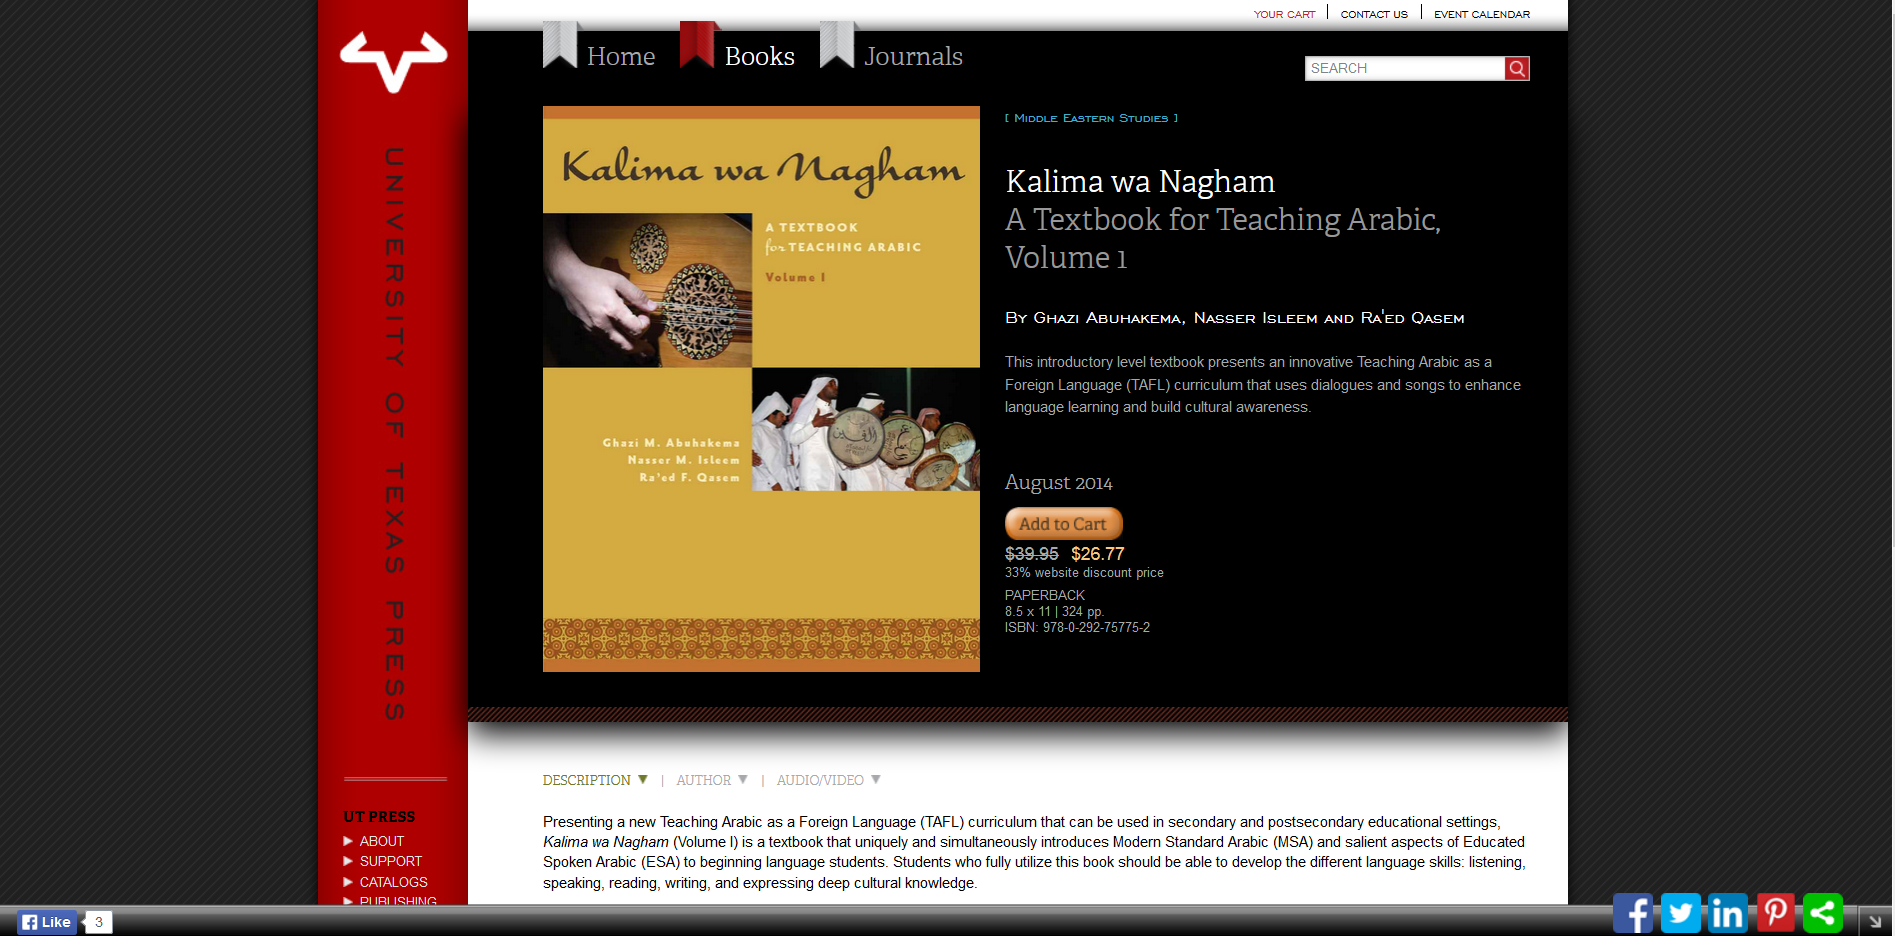 Kalima wa Nagham: A Textbook for Teaching Arabic, Volume I